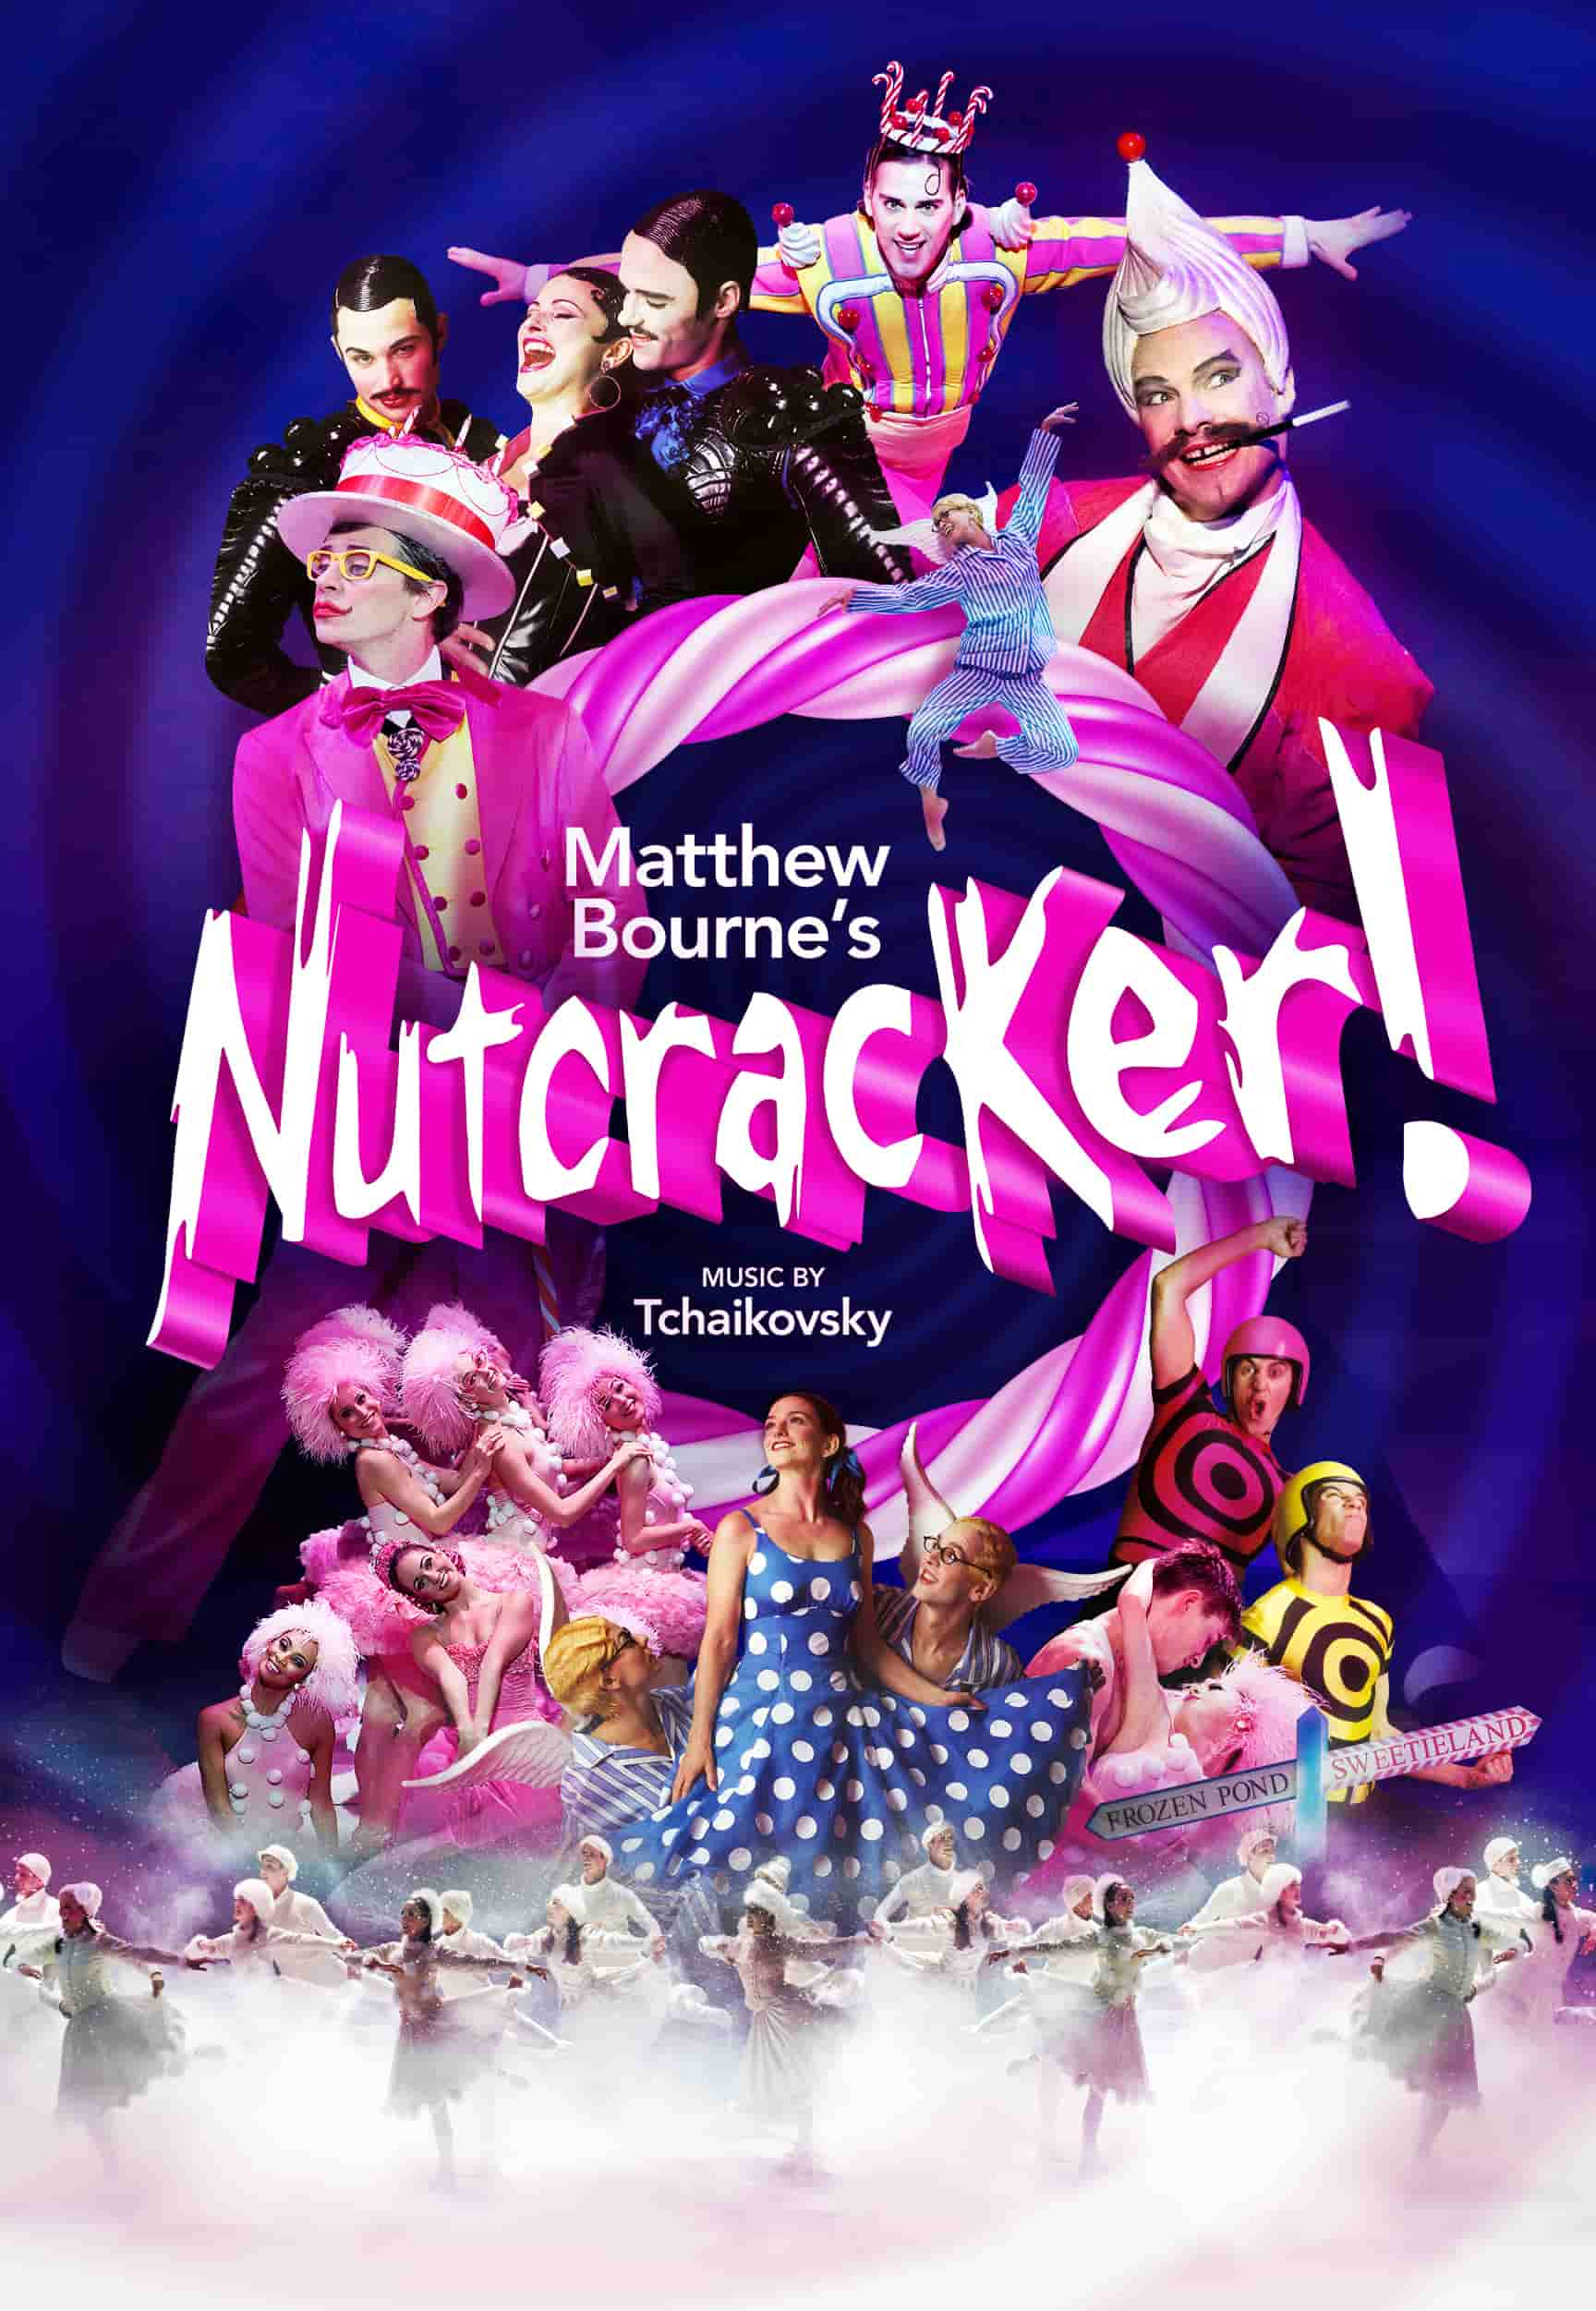 Nutcracker web poster